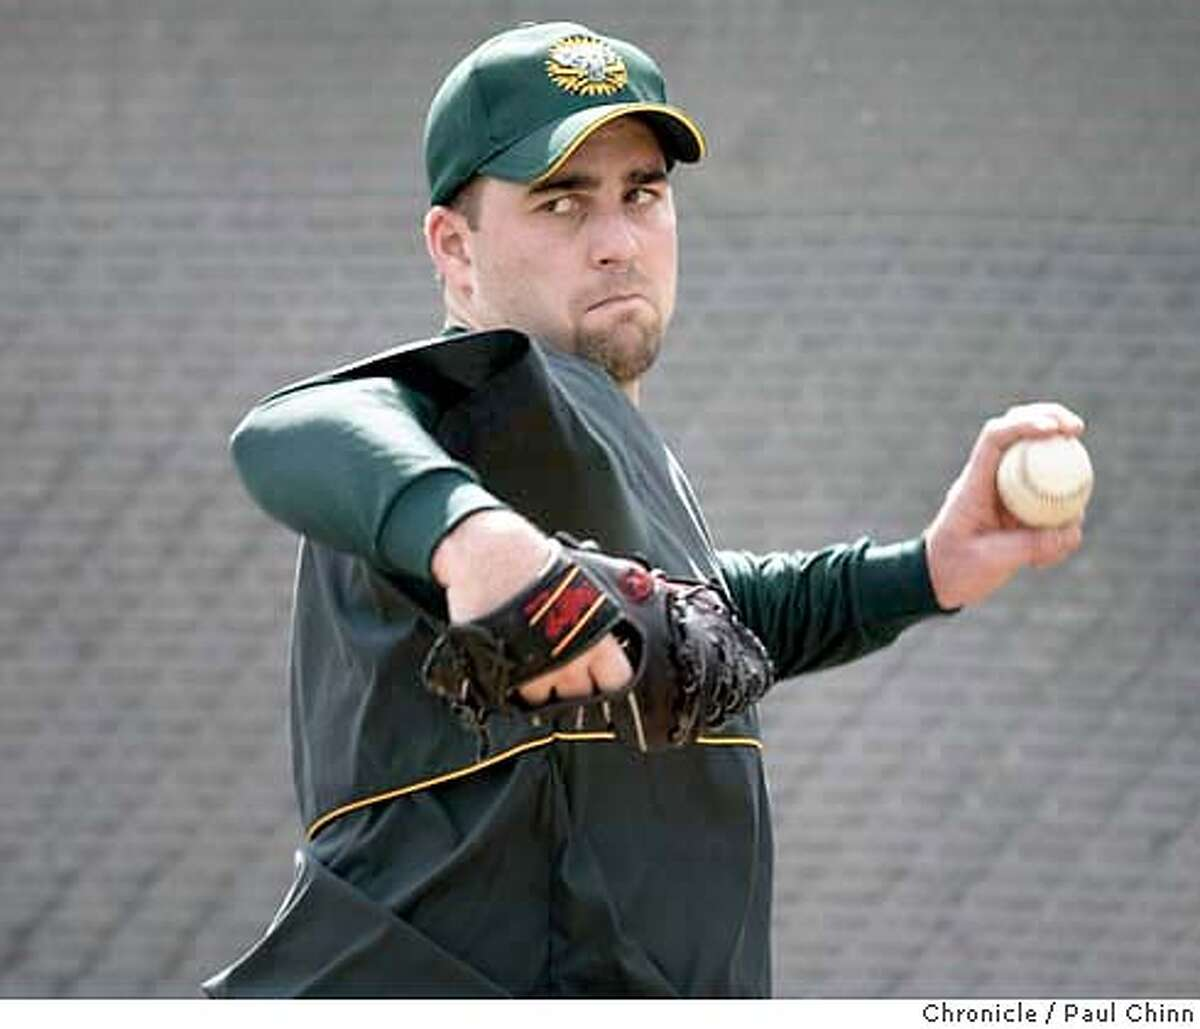 athletics25_113_pc.JPG Mark Redman threw 40 pitches during Tuesday's workout. The Oakland Athletics continue 2004 Spring Training workouts on 2/24/04 in Phoenix, AZ. PAUL CHINN / The Chronicle Mark Redman lasted less than two innings, allowing five hits and three runs. Mark Redman lasted less than two innings, allowing five hits and three runs. MANDATORY CREDIT FOR PHOTOG AND SF CHRONICLE/ -MAGS OUT